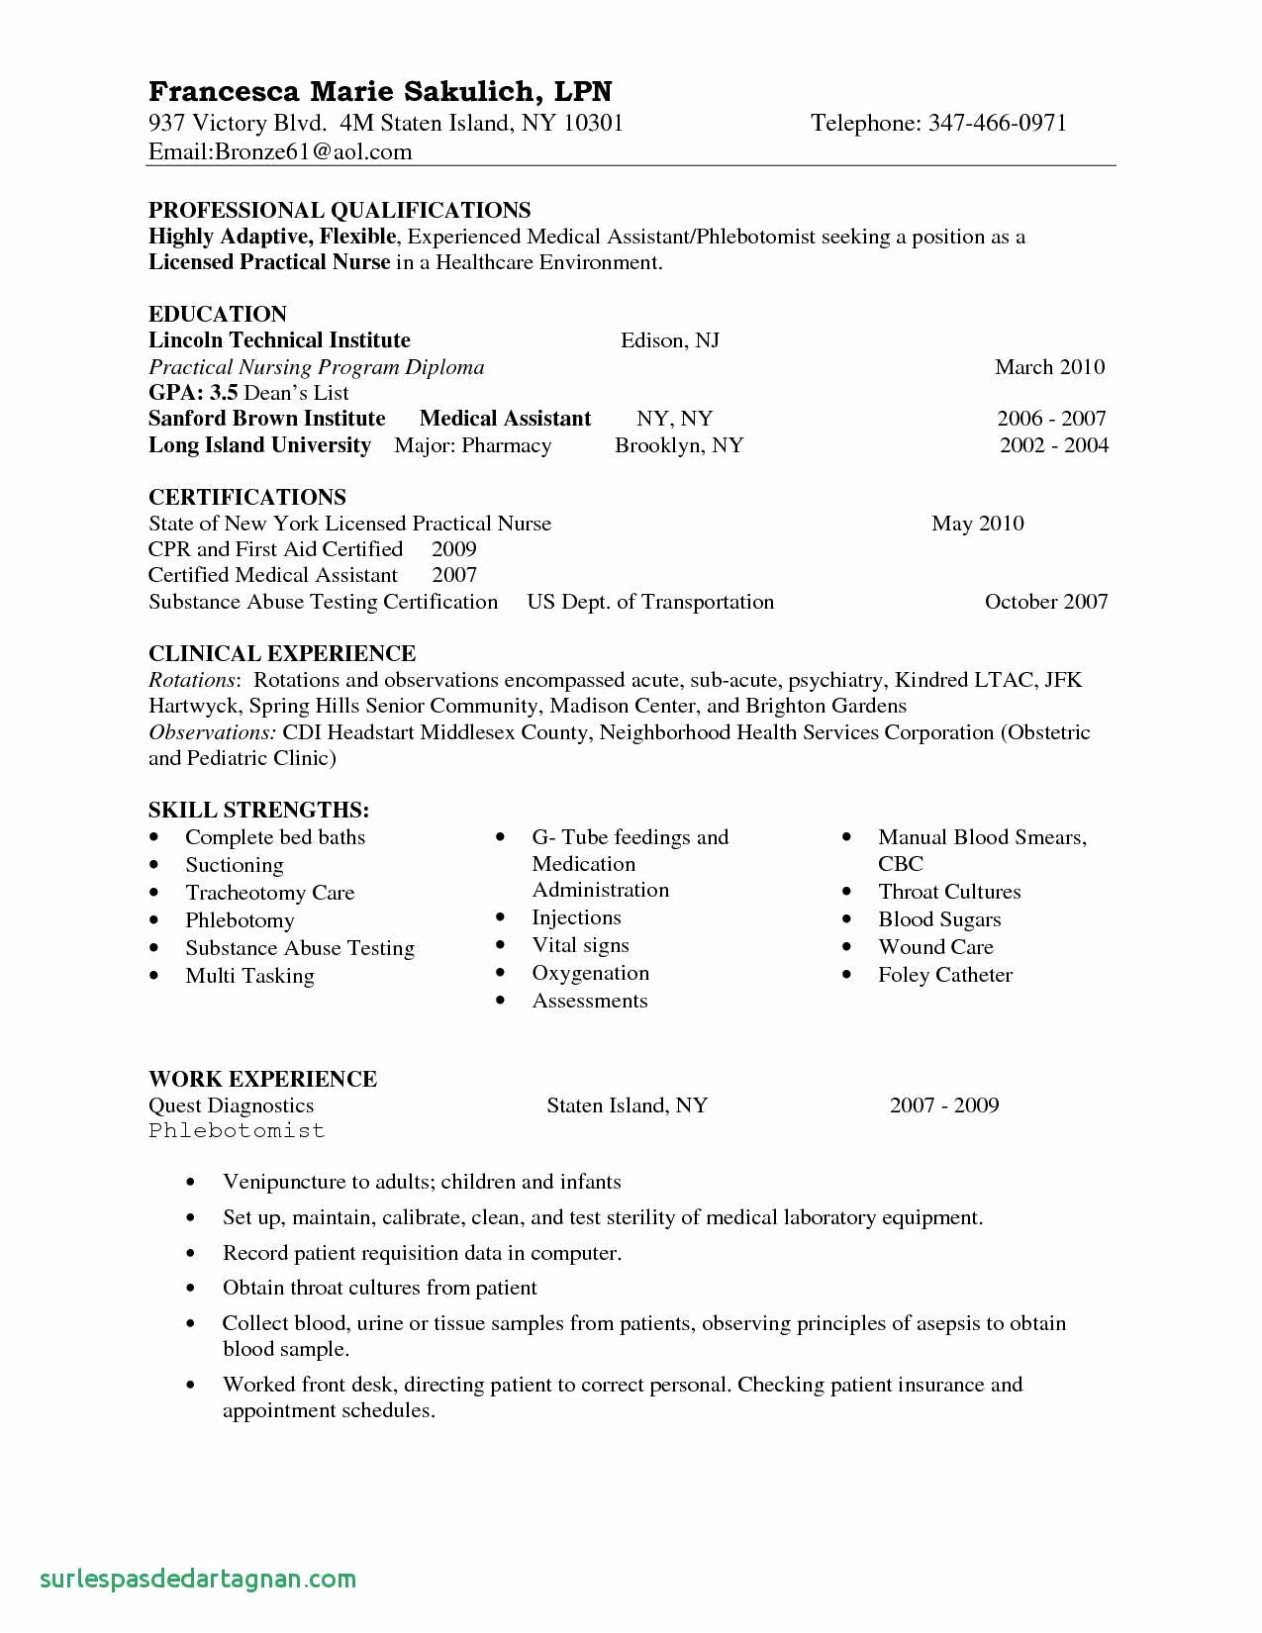 new grad nurse resume example-Awesome New Grad Nursing Resume Template 6-a